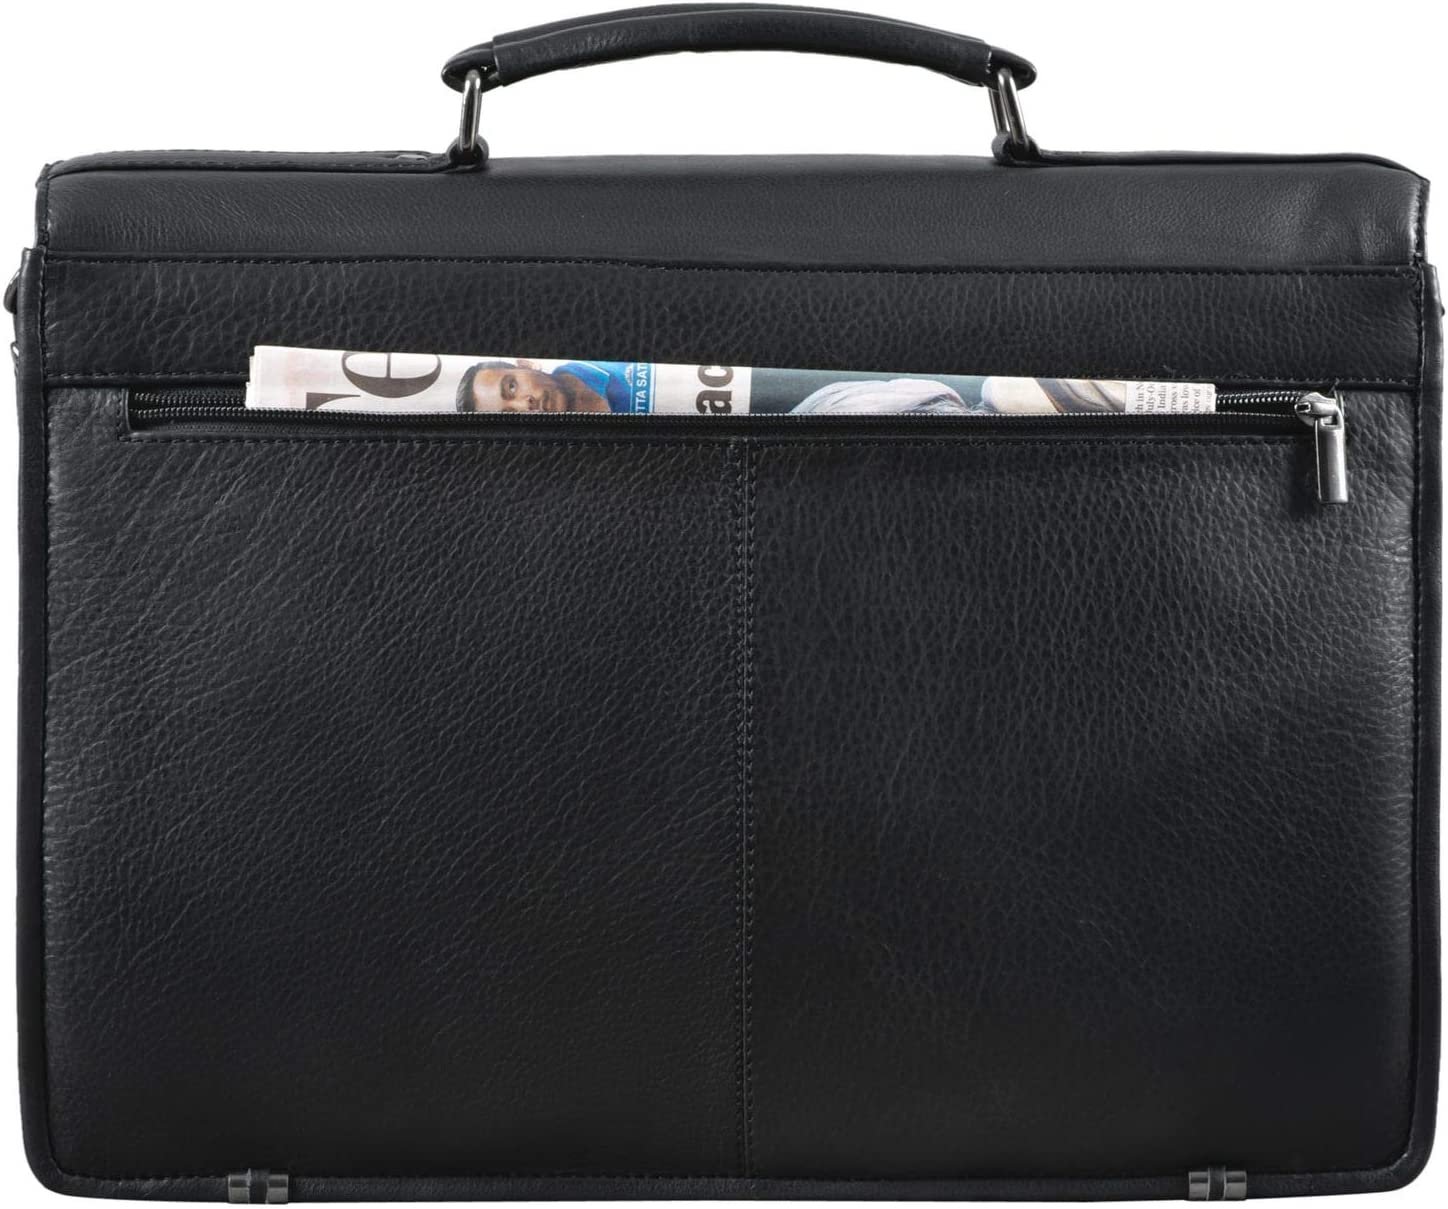 Colour:Anthracite STILORD Miguel Classic Briefcase Leather Men Portfolio for Business Office Shoulder Bag for Laptop 15.6 inches